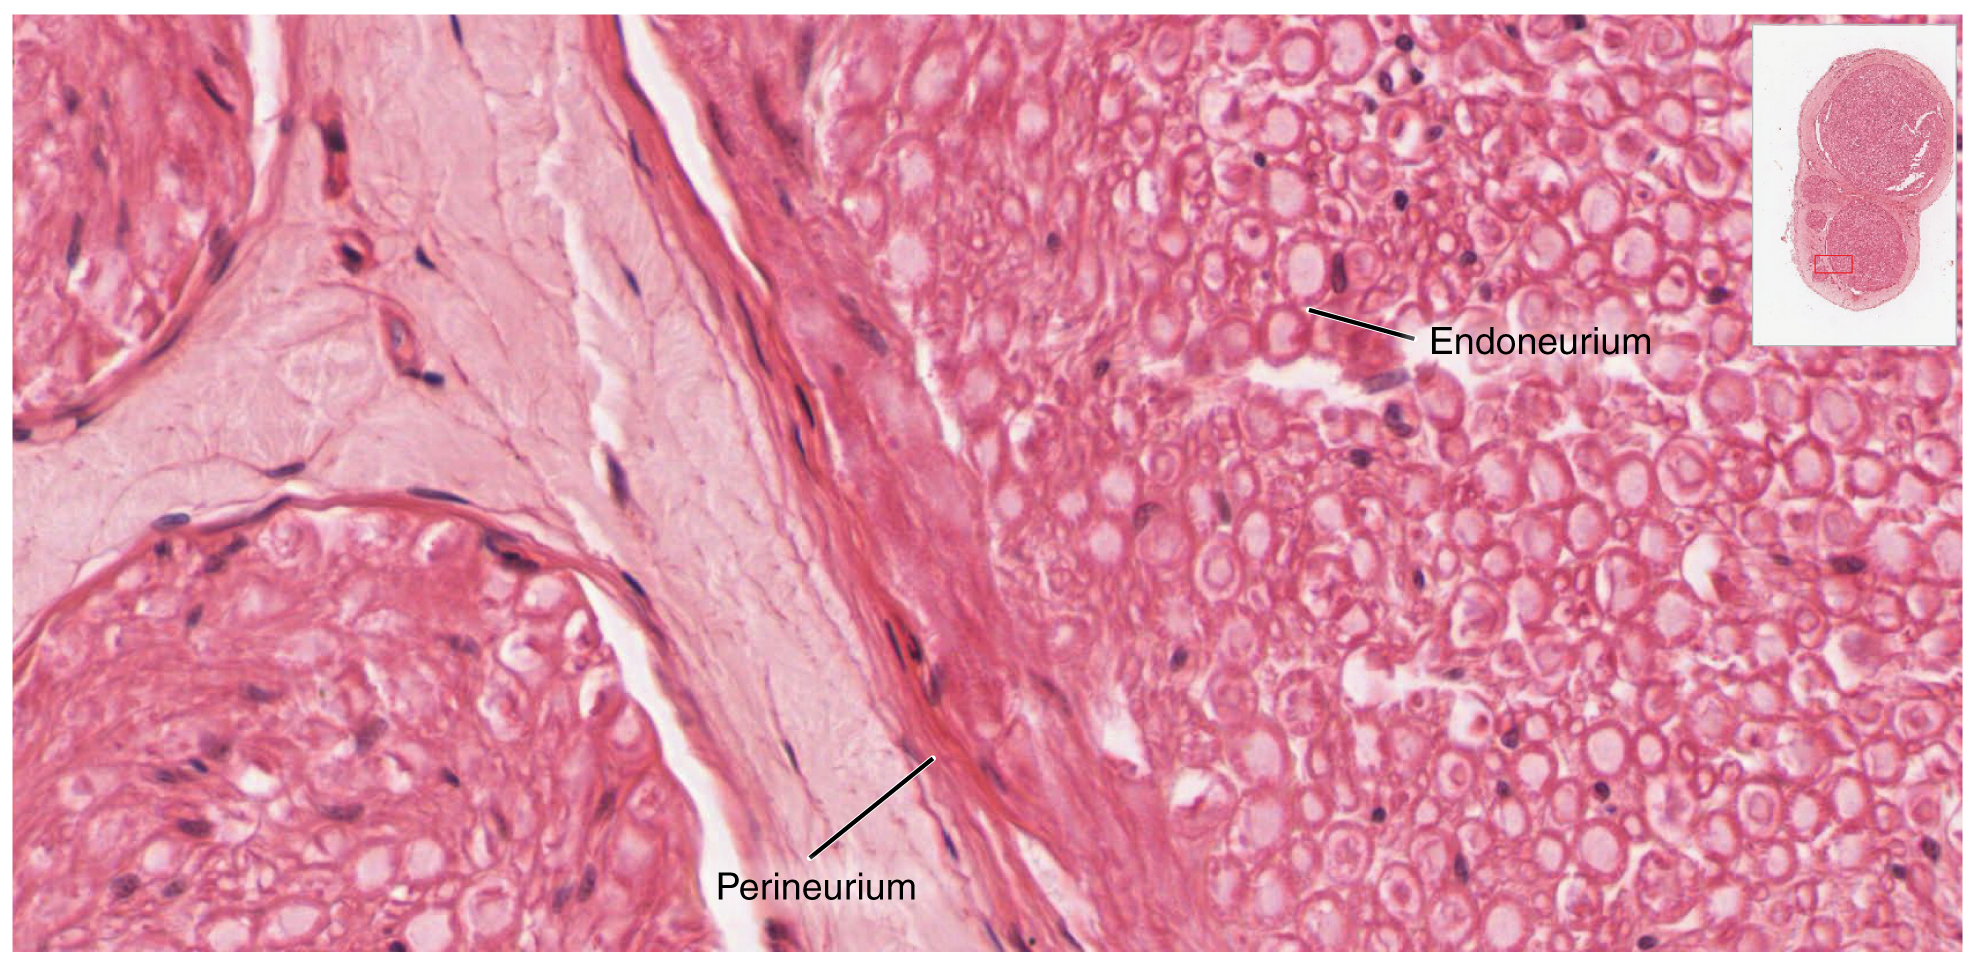 This micrograph shows a magnified view of the nerve. The perineurium and the endoneurium are labeled.